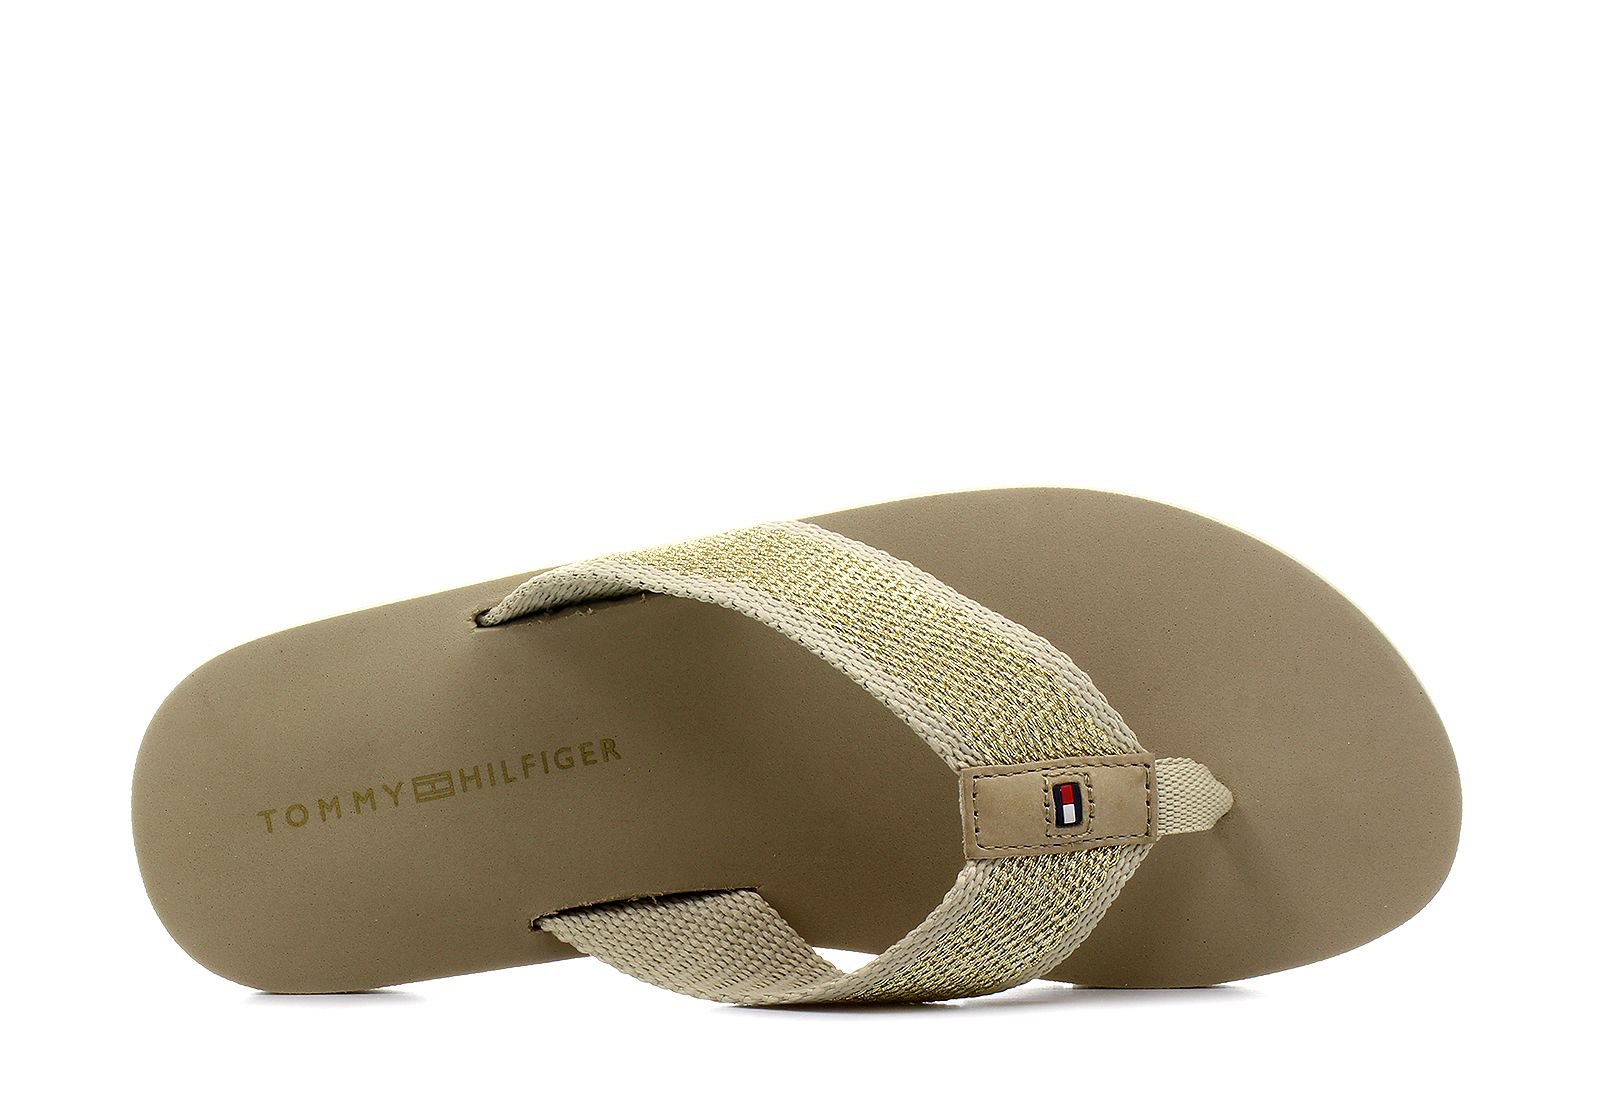 aded4927bfd7d Tommy Hilfiger Slippers - Mimi 3d - 17S-0444-932 - Online shop for ...